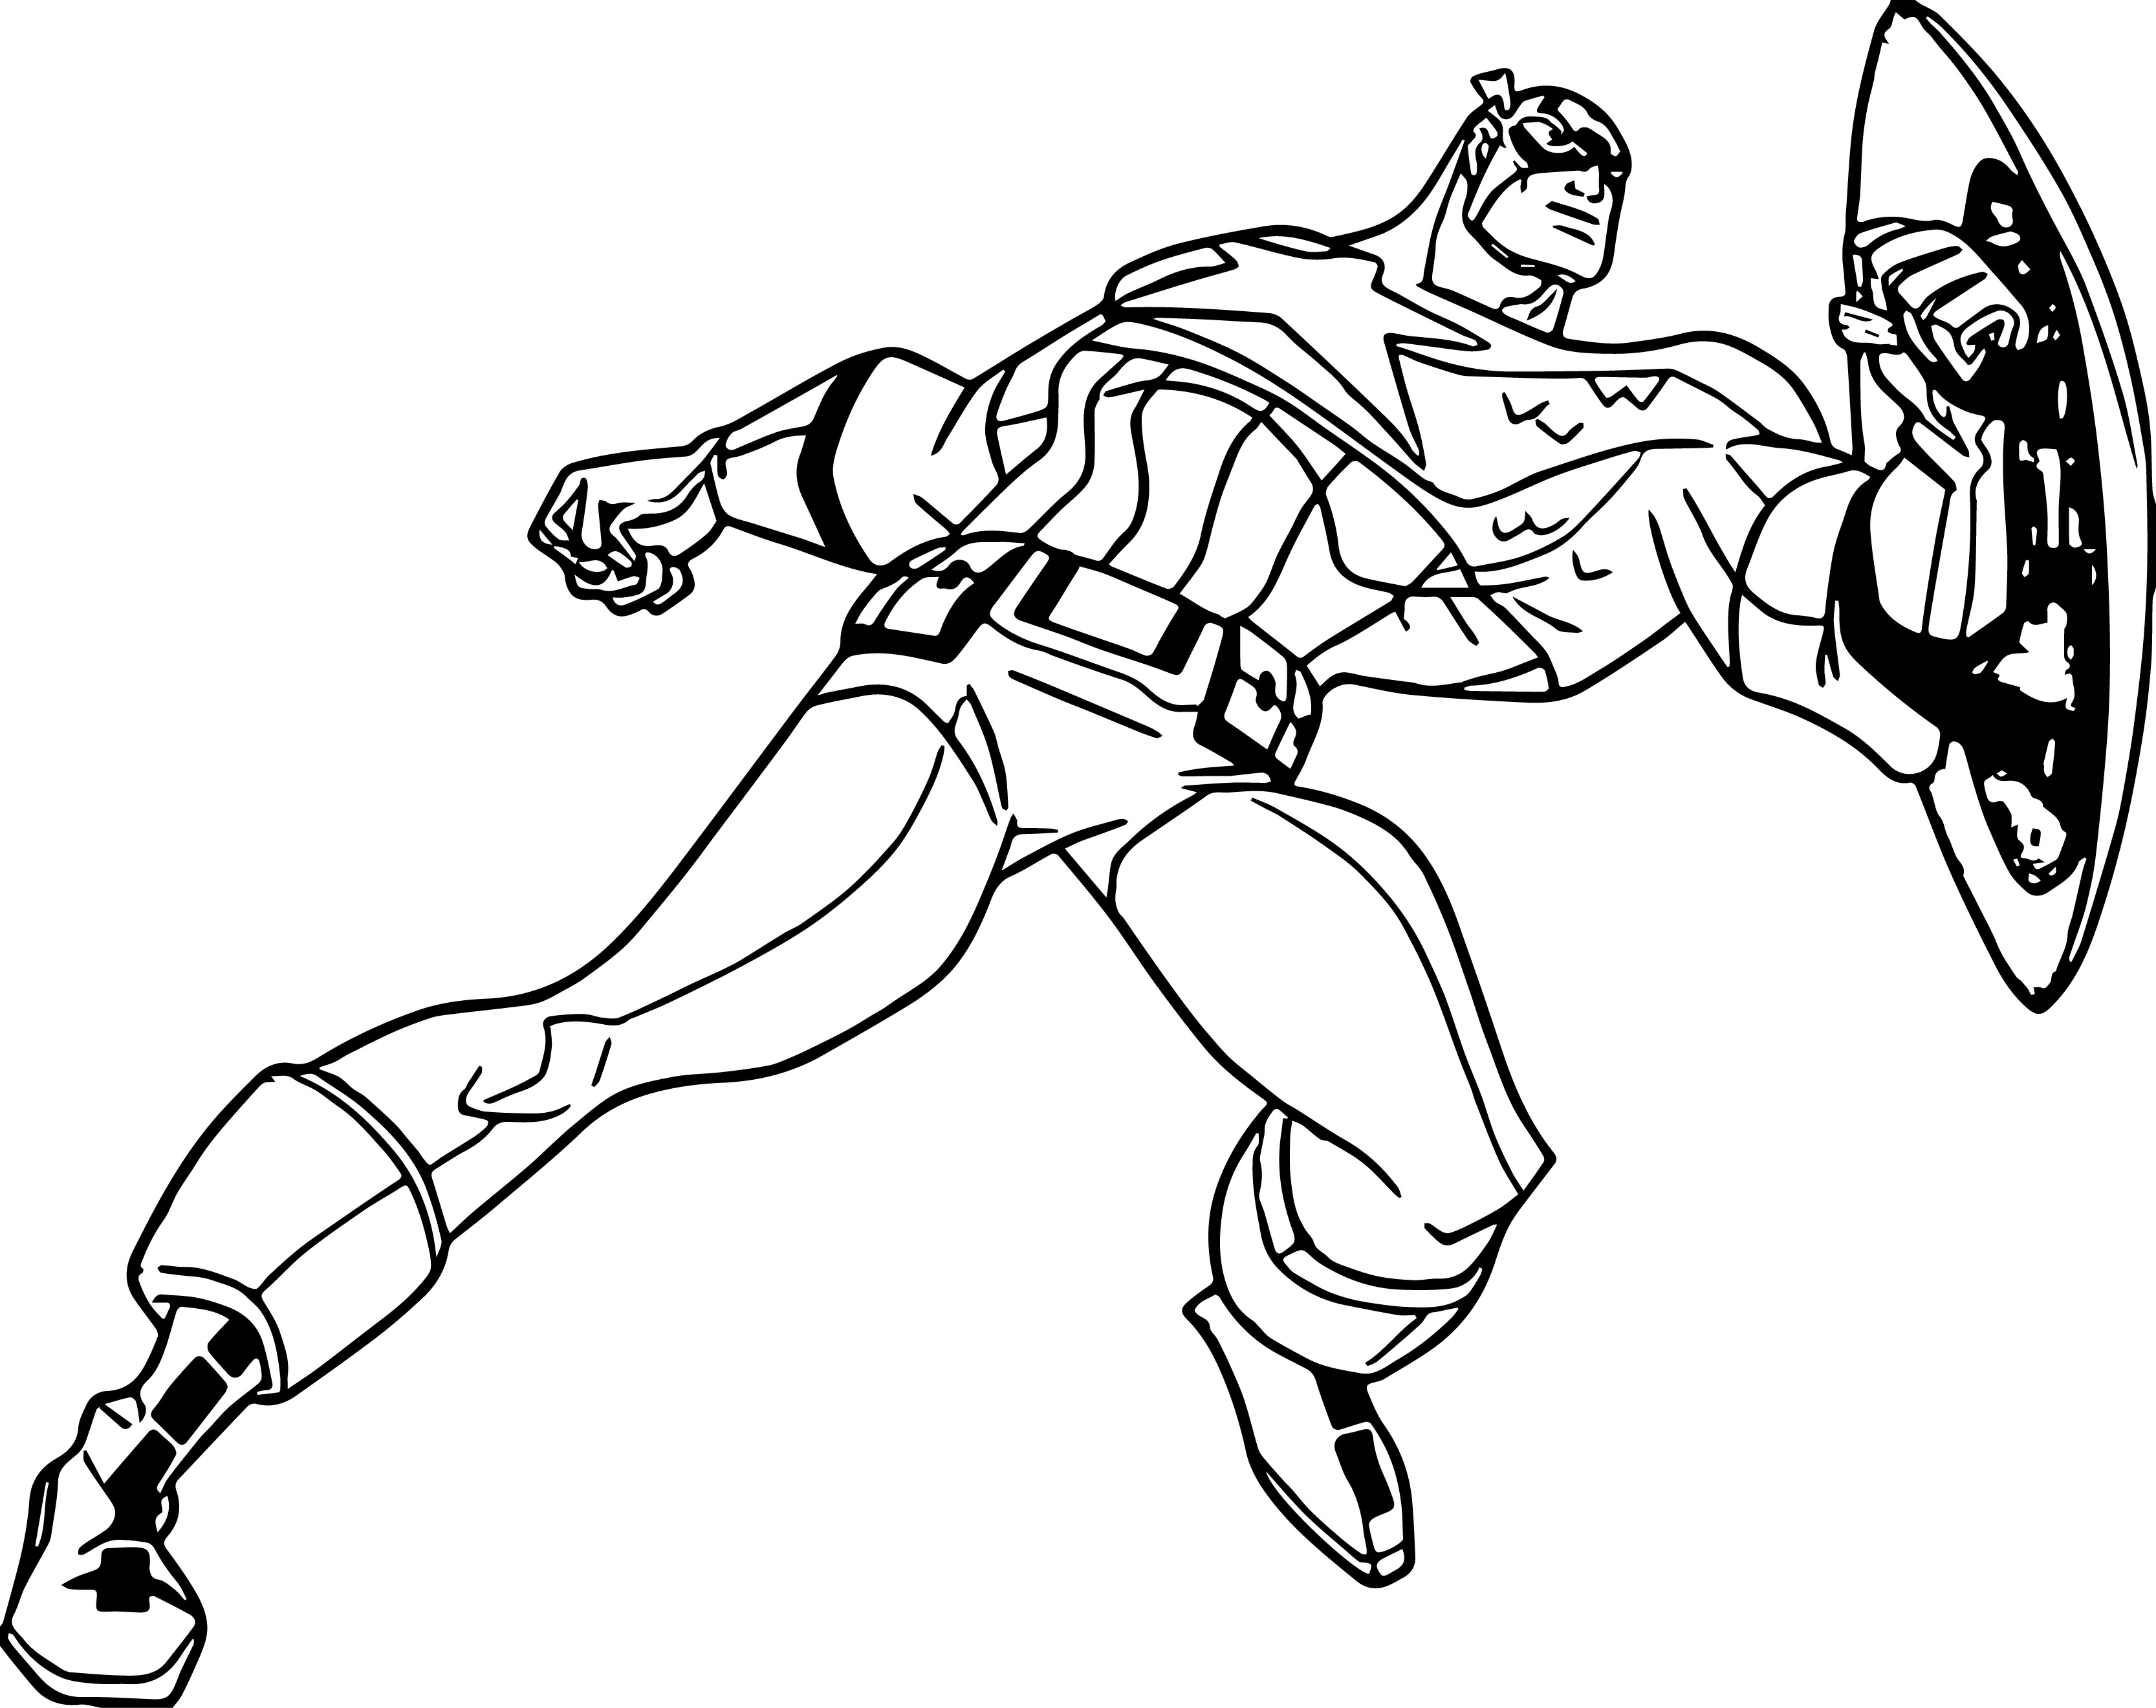 UPDATED] 50 Captain America Coloring Pages (July 2020) | 2640x3333